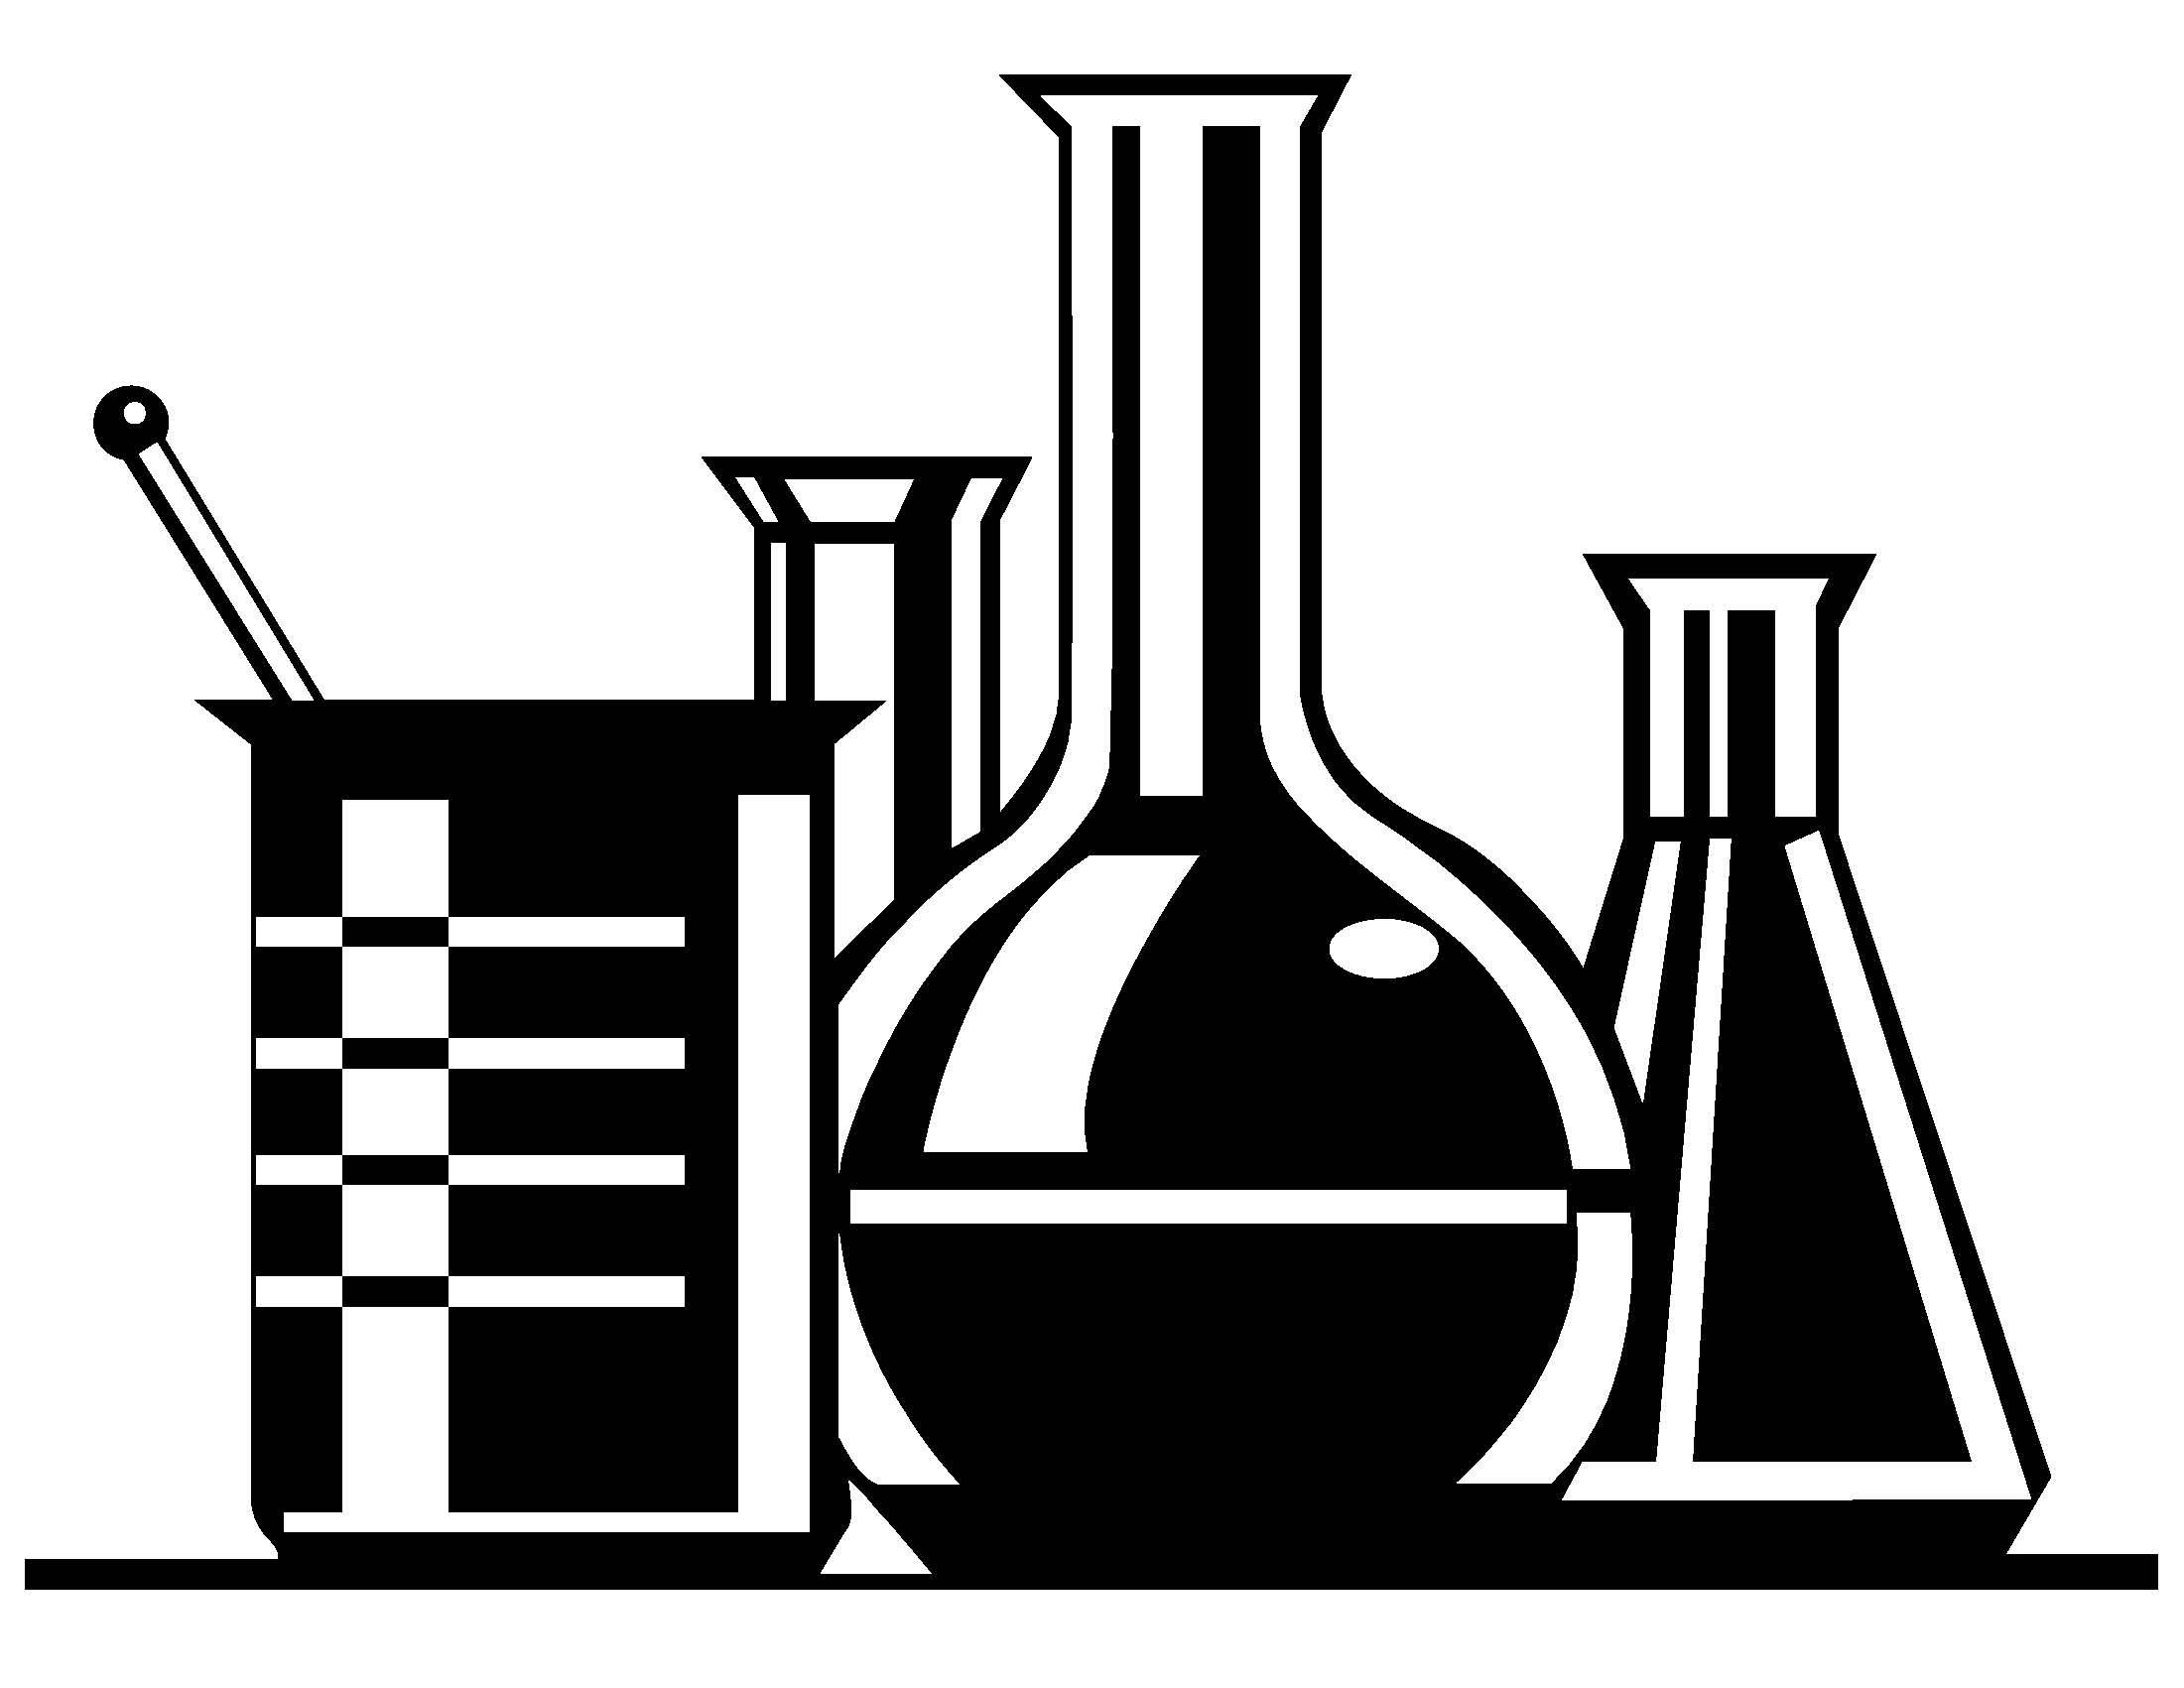 Laboratory equipment clipart image royalty free download Free Science Cliparts Black, Download Free Clip Art, Free Clip Art ... image royalty free download